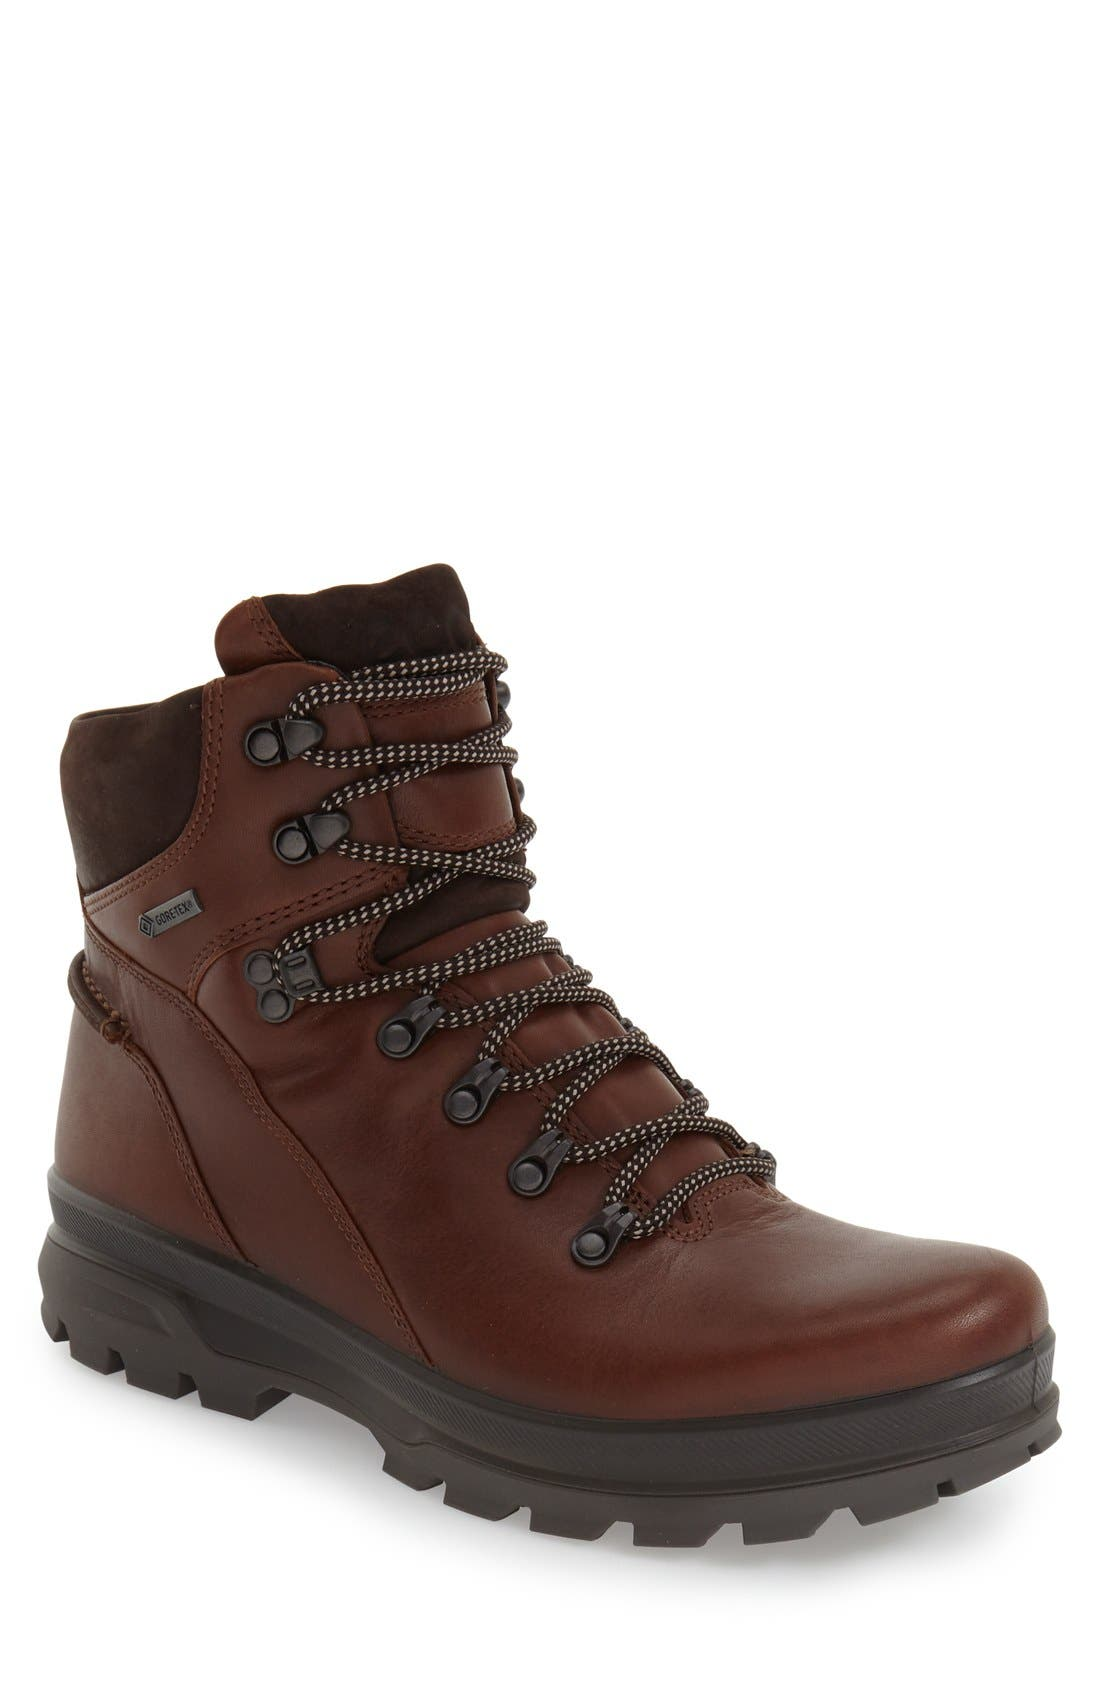 Alternate Image 1 Selected - ECCO 'Rugged Track GTX' Hiking Boot (Men)